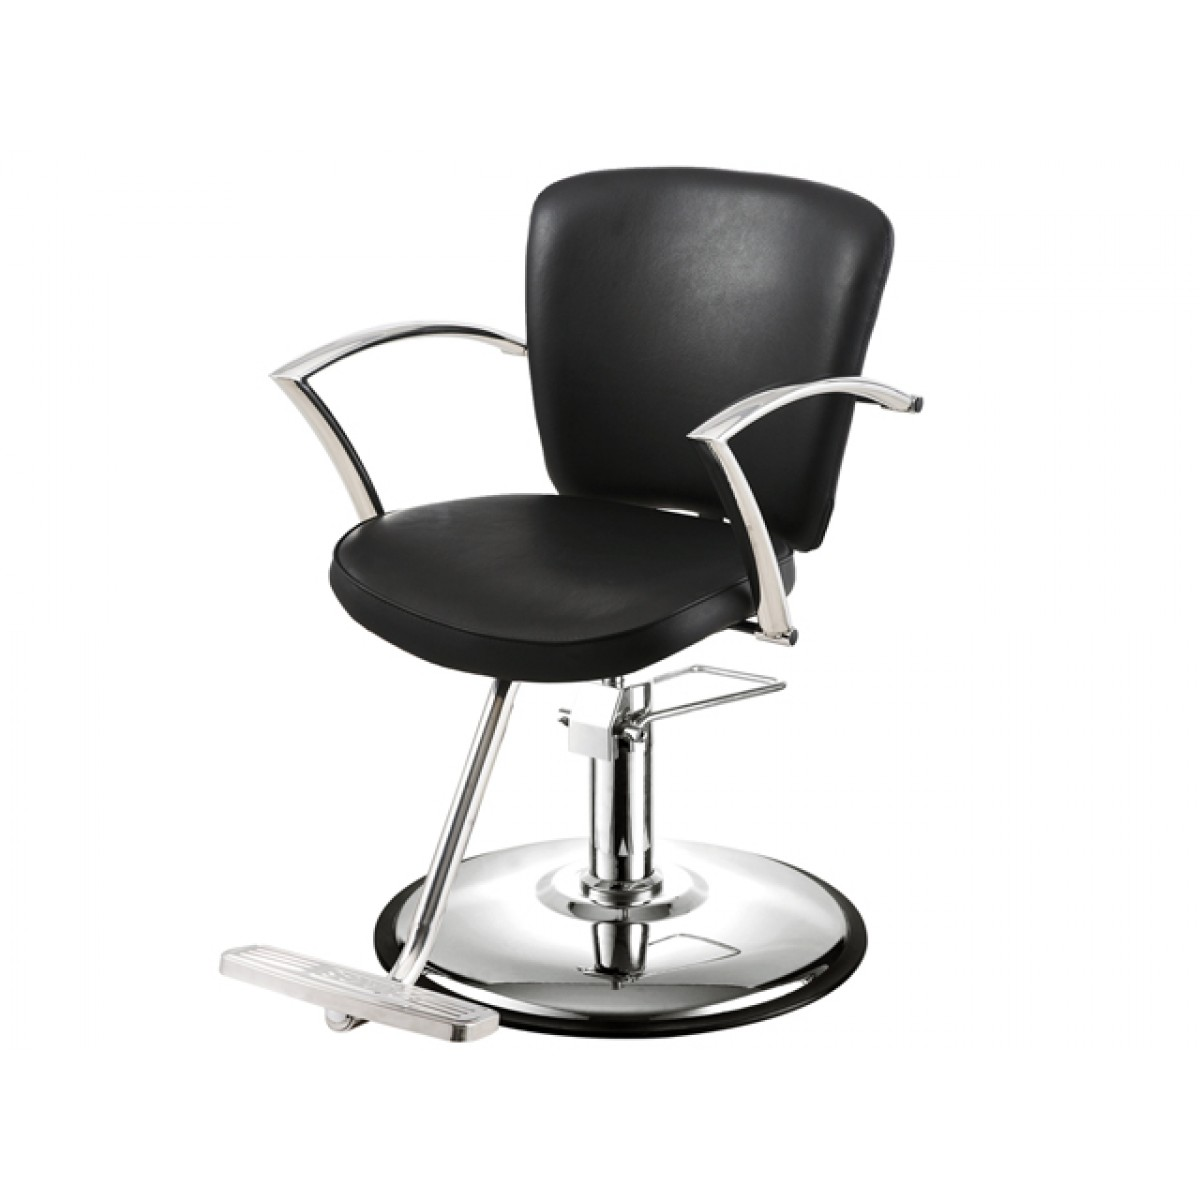 Ags beauty salon equipment salon furniture chairs wholesale in nyc - Wholesale hair salon equipment ...